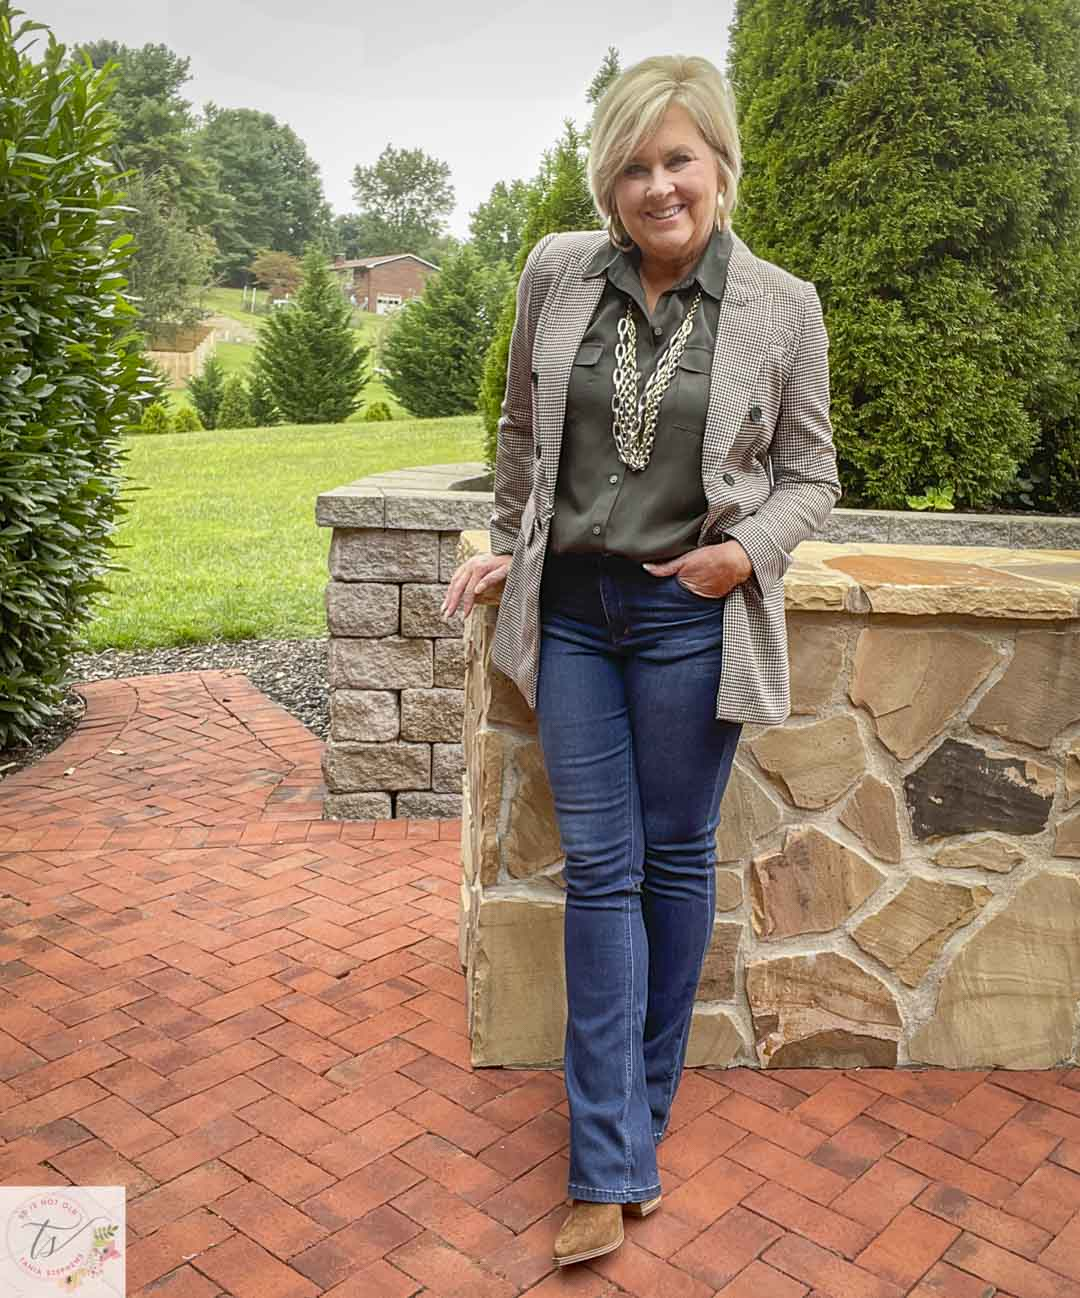 Over 40 Fashion Blogger, Tania Stephens, is leaning against a wall wearing a plaid blazer with an olive button-up shirt, bootcut jeans, and suede ankle boots